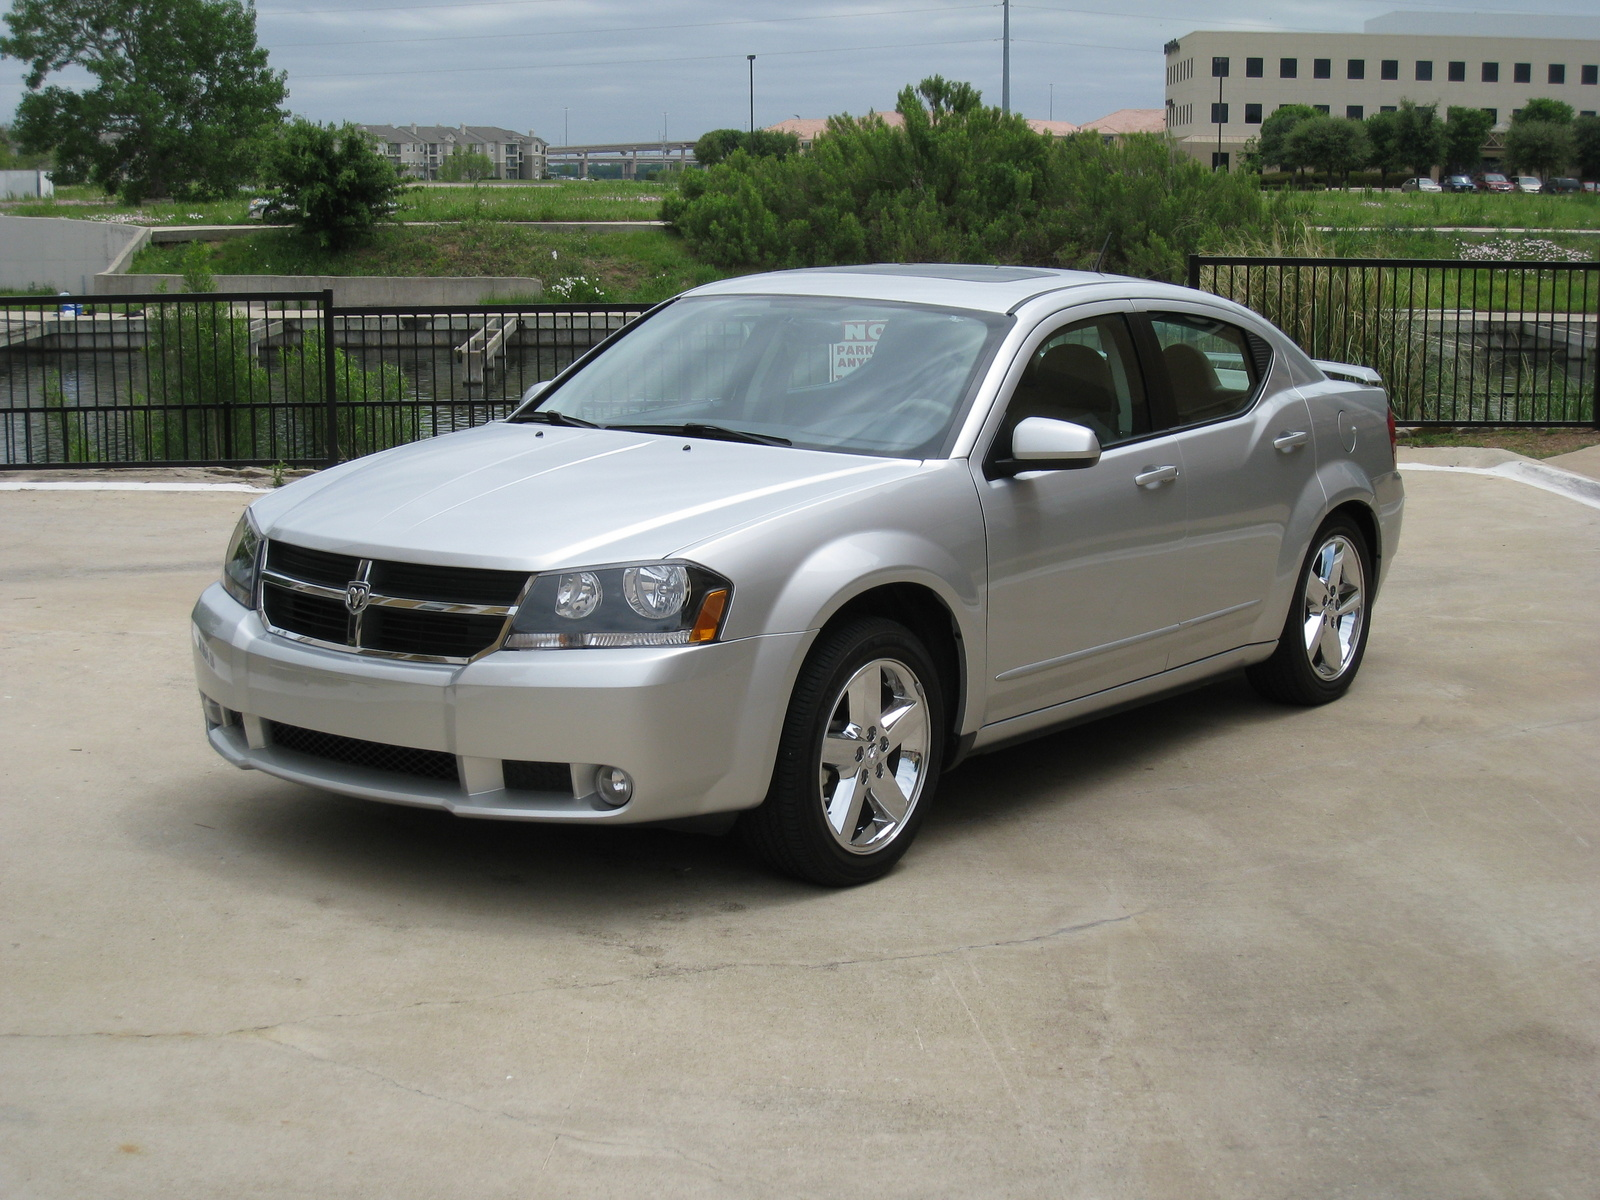 Dodge avenger photo 03